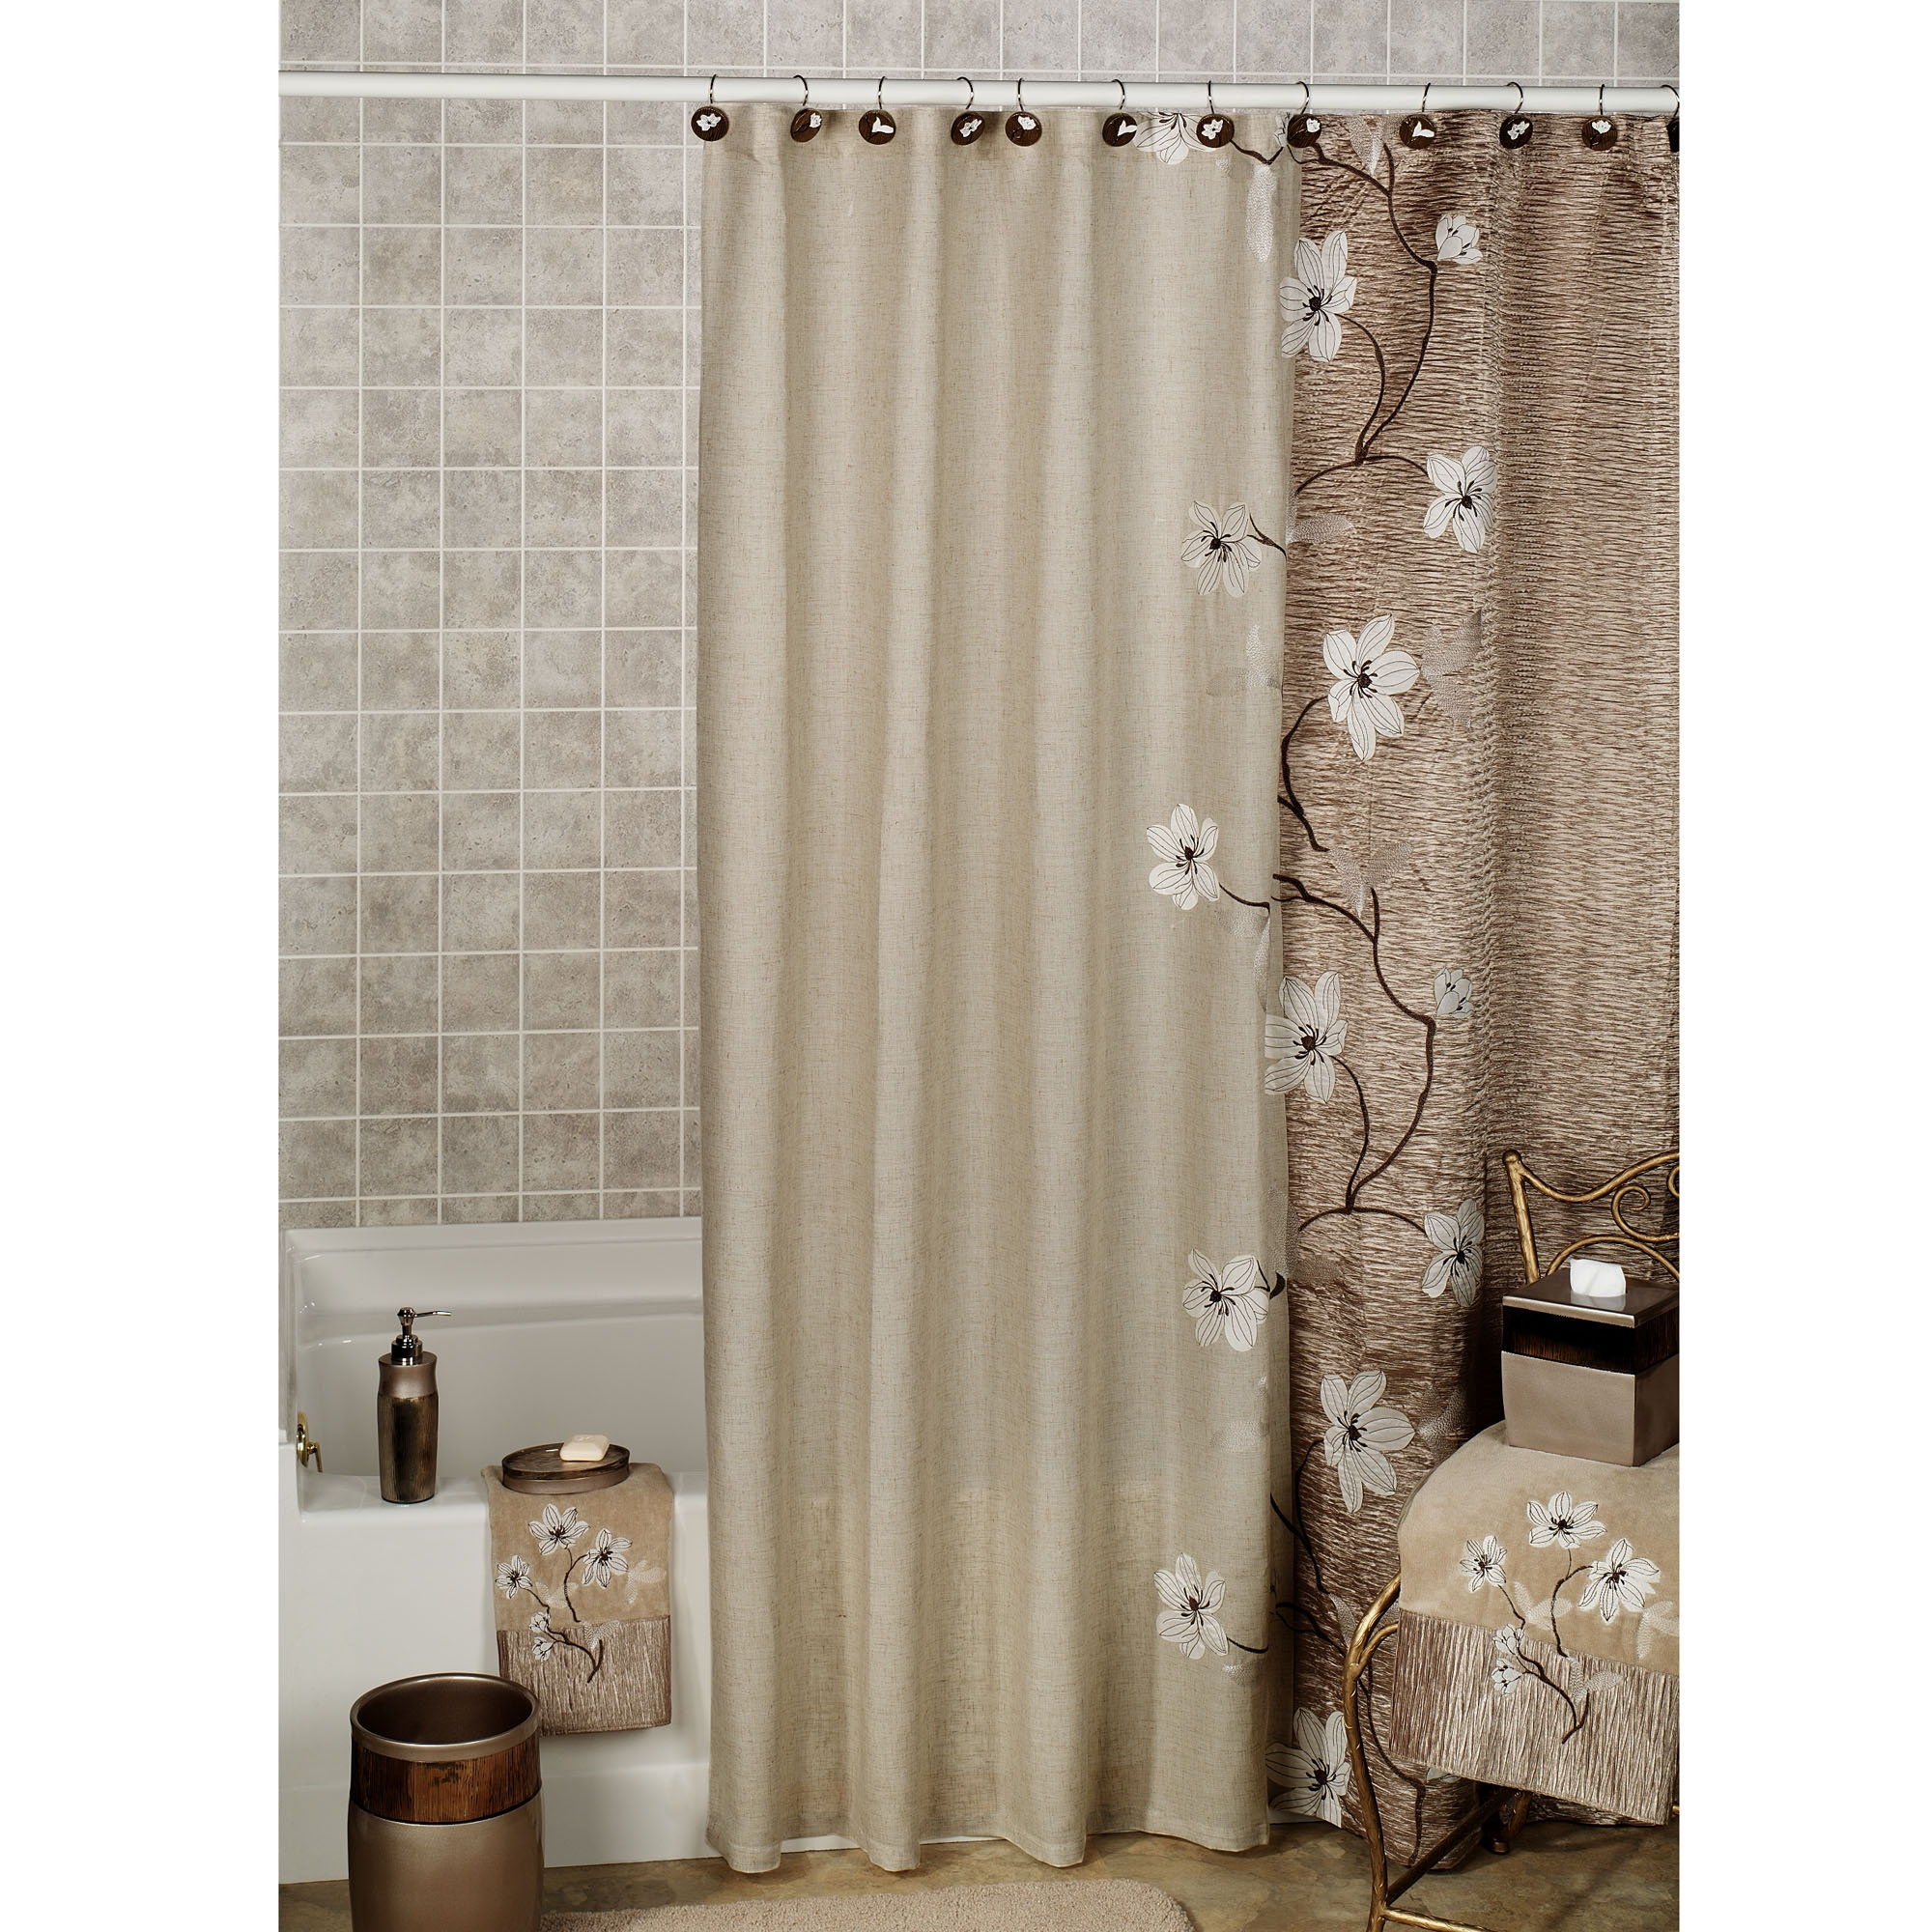 Shower Curtains With Matching Rugs And Towels • Shower Curtains Ideas